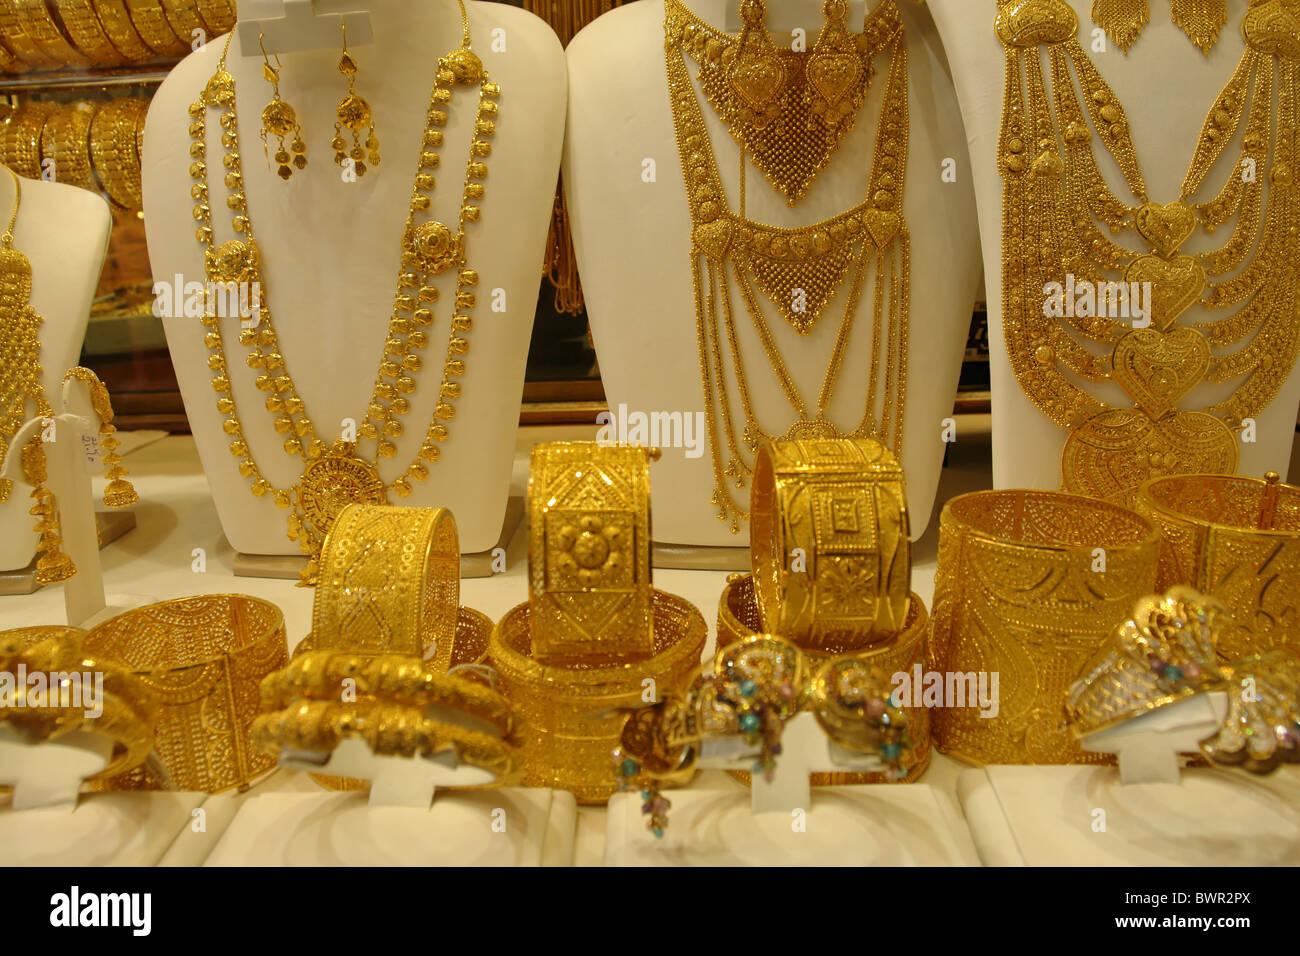 deira in arab emirates picture detail res souk photography dubai high photo stock necklaces gold united